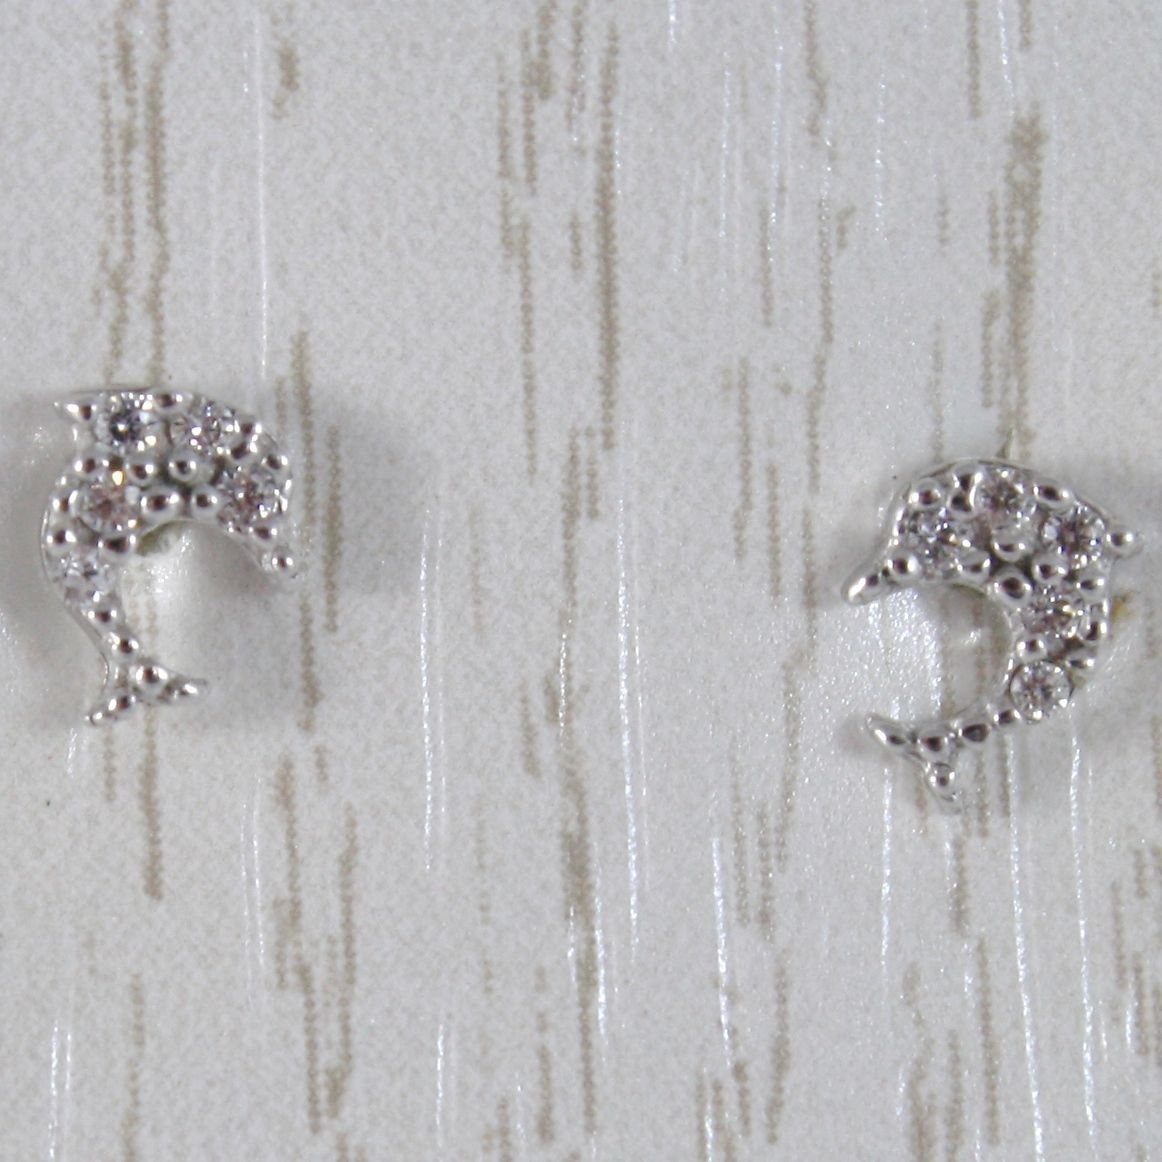 White Gold Earrings 750 18k Stud, with Mini Dolphins and Zirconia, 6 MM LONG